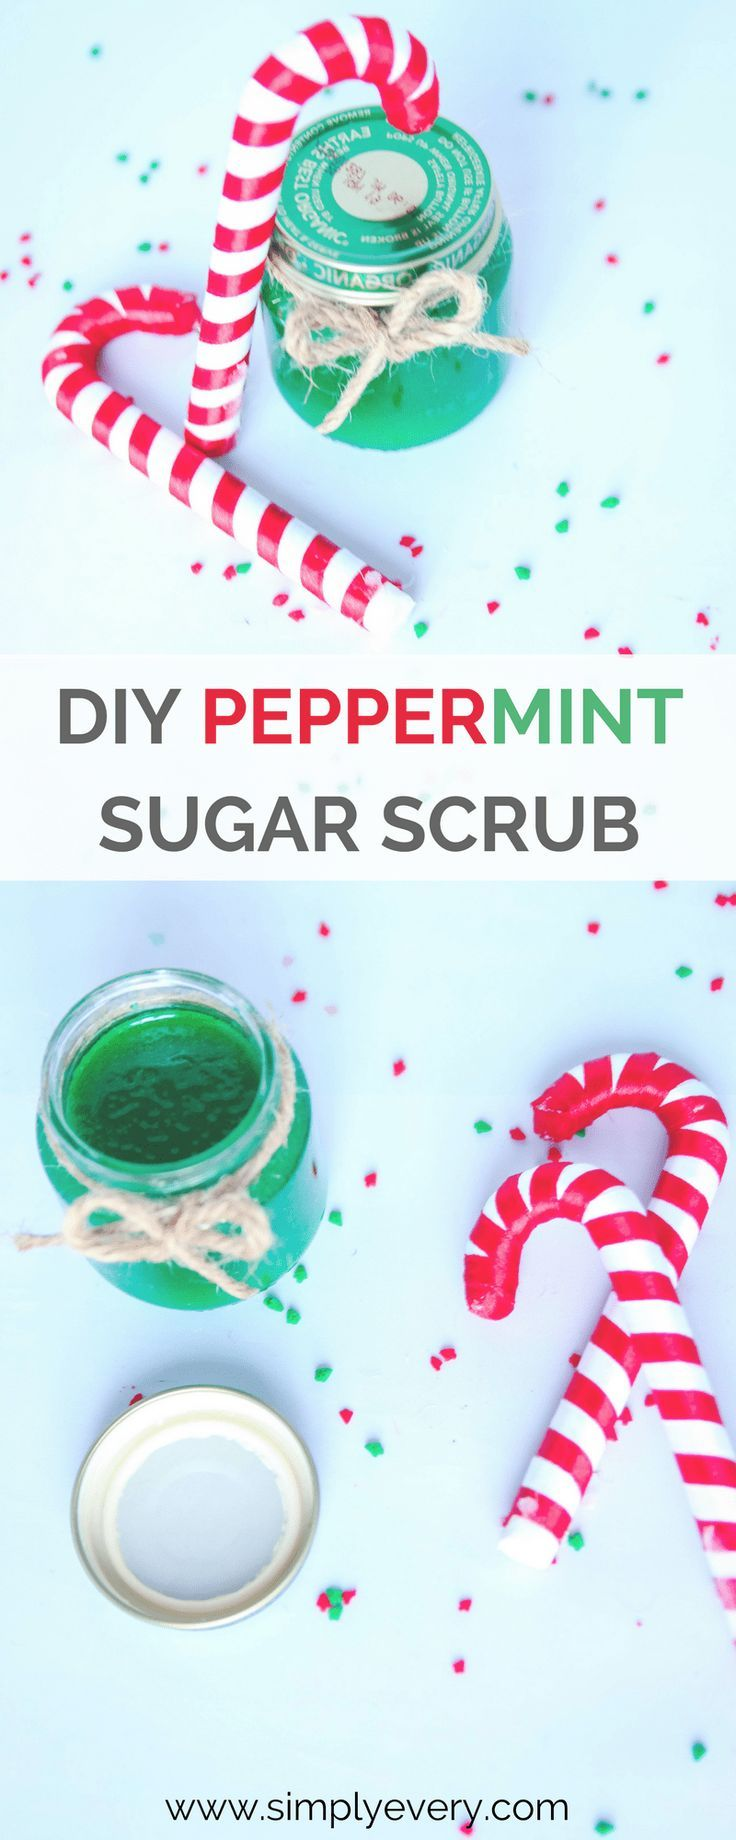 DIY Peppermint Sugar Scrub, beauty, pedicure, mom life, me time, AD, at home pedicure, simple ways to spoil yourself, pedicures, holiday gifts, diy gift ideas